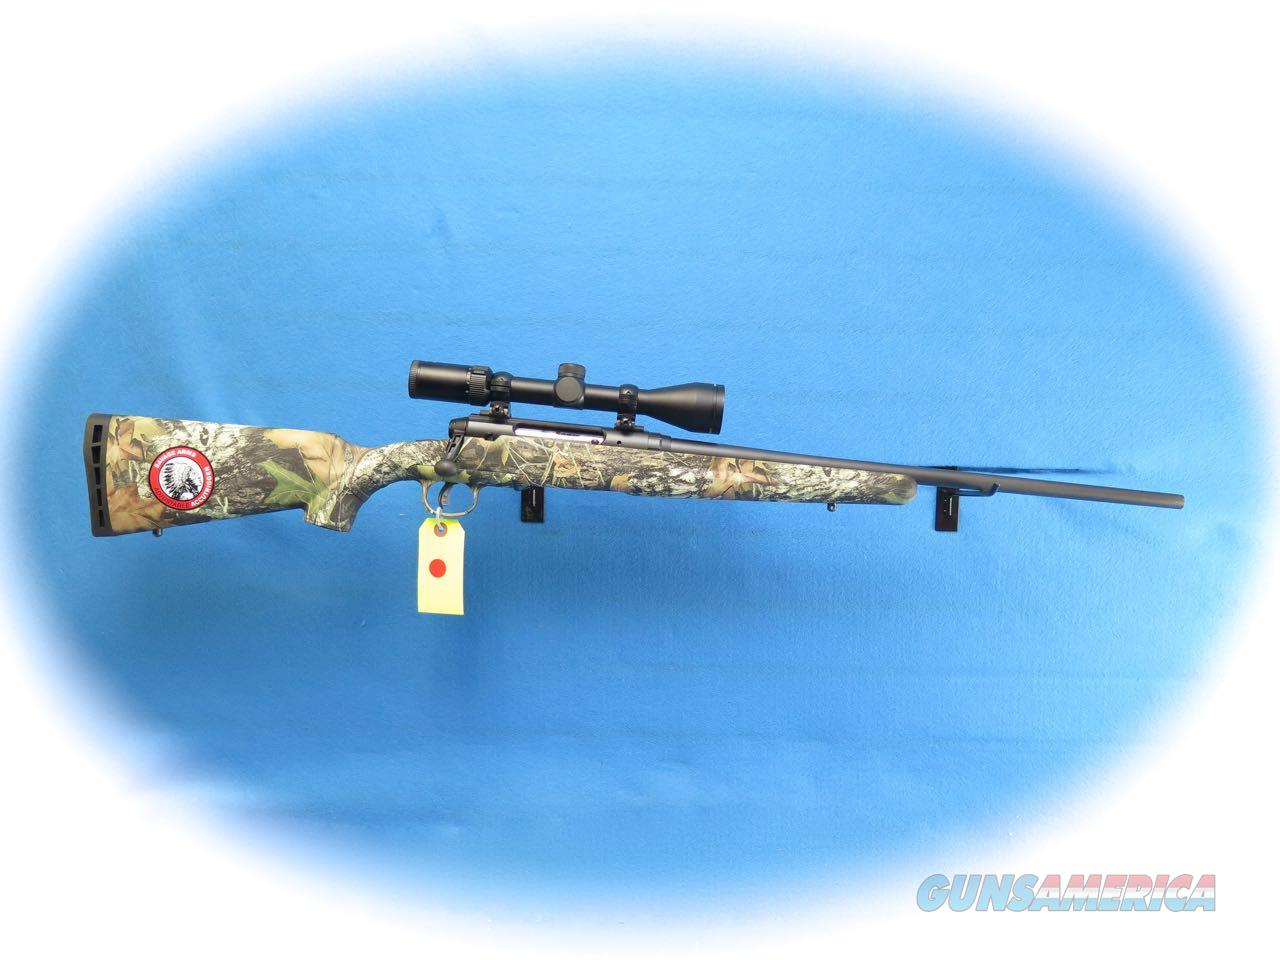 Savage Axis II XP Bolt Action Rifle/Scope Pkg. .308 Win Cal MOBU Camo SKU 22243 **New**  Guns > Rifles > Savage Rifles > Accutrigger Models > Sporting